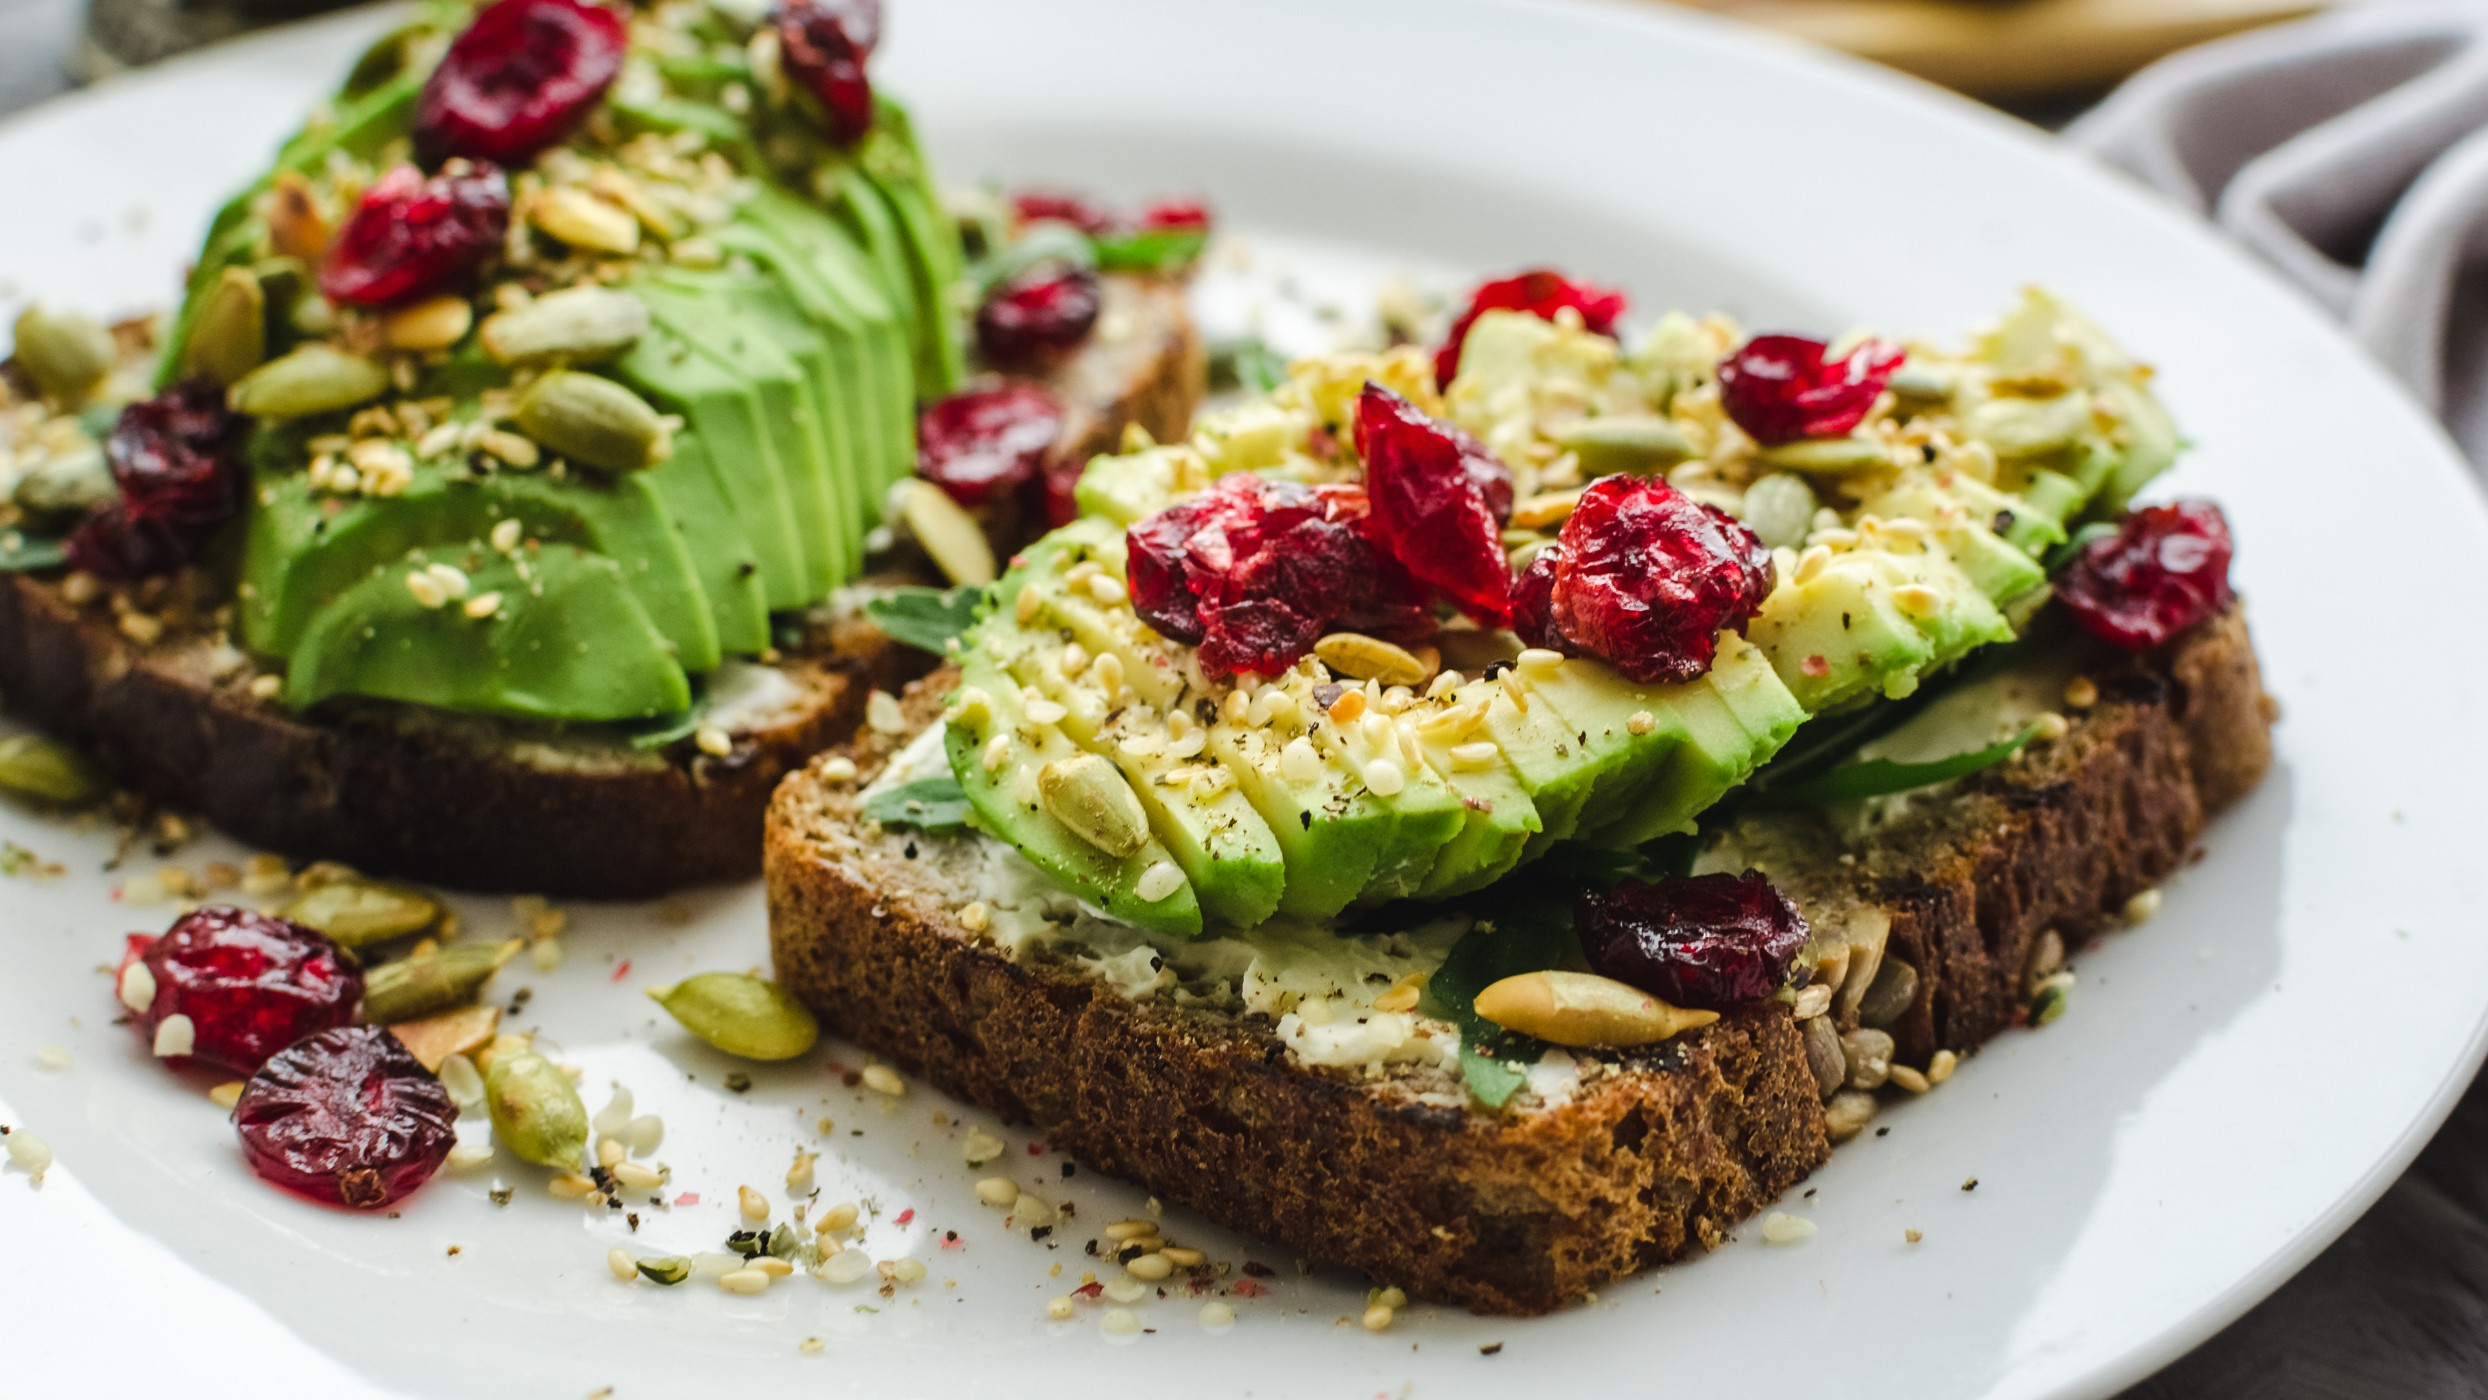 Avocado toast is a brunch staple